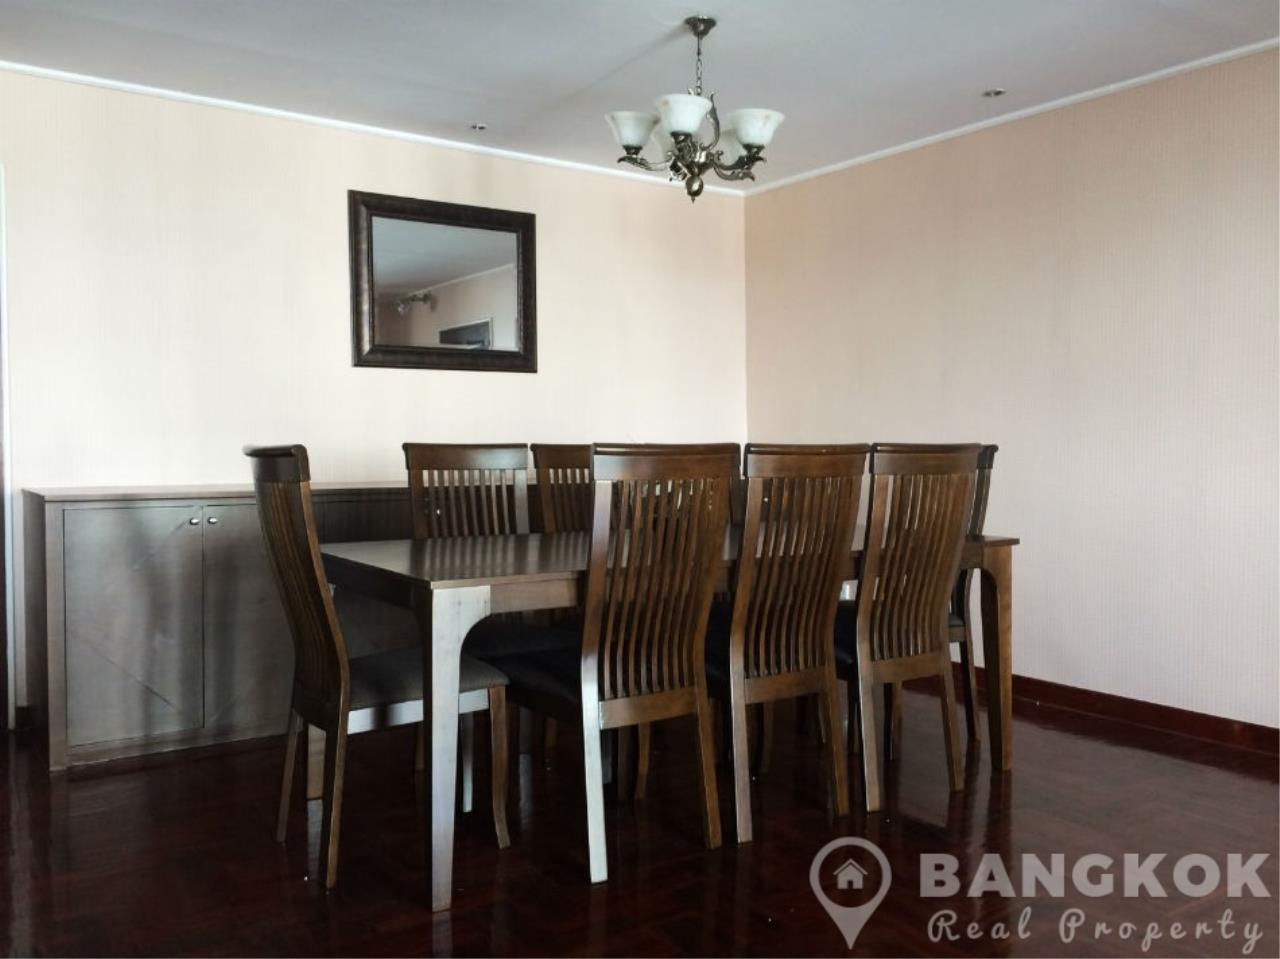 Bangkok Real Property Agency's Casa Viva | Very Spacious 3 Bed 3 Bath Condo in Ekkamai 6